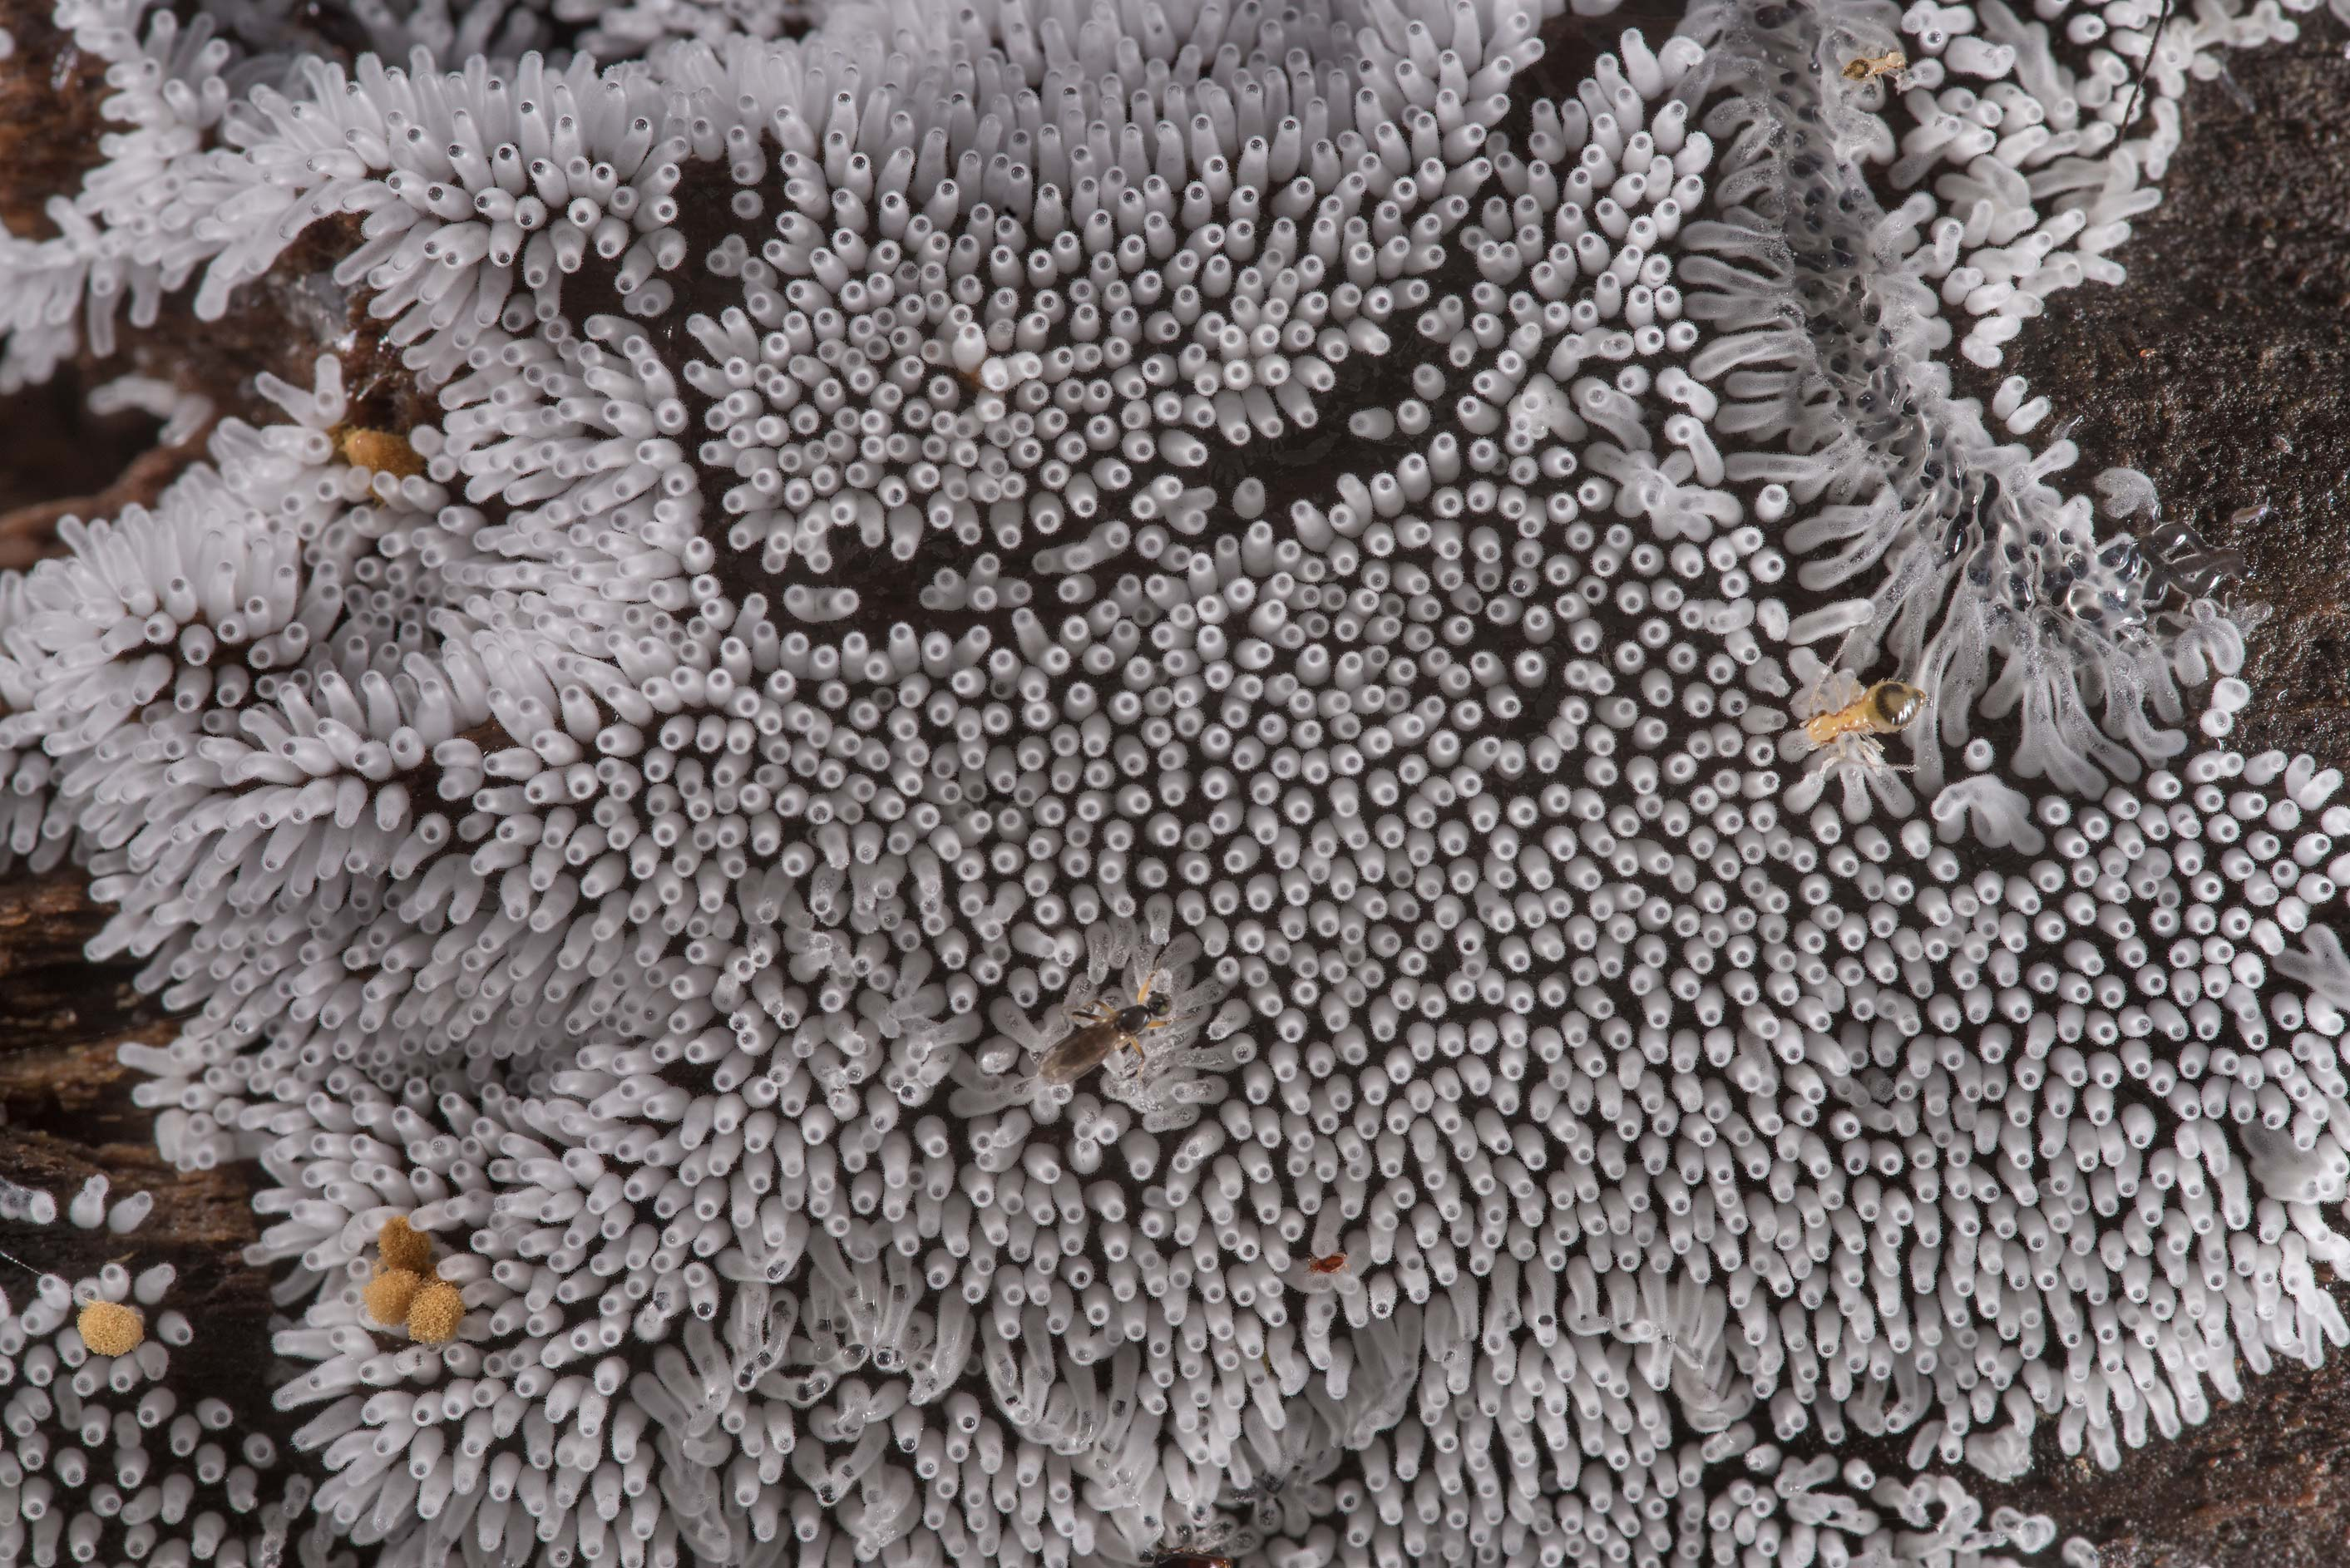 Coral slime mold (Ceratiomyxa fruticulosa) on a...National Forest near Huntsville. Texas